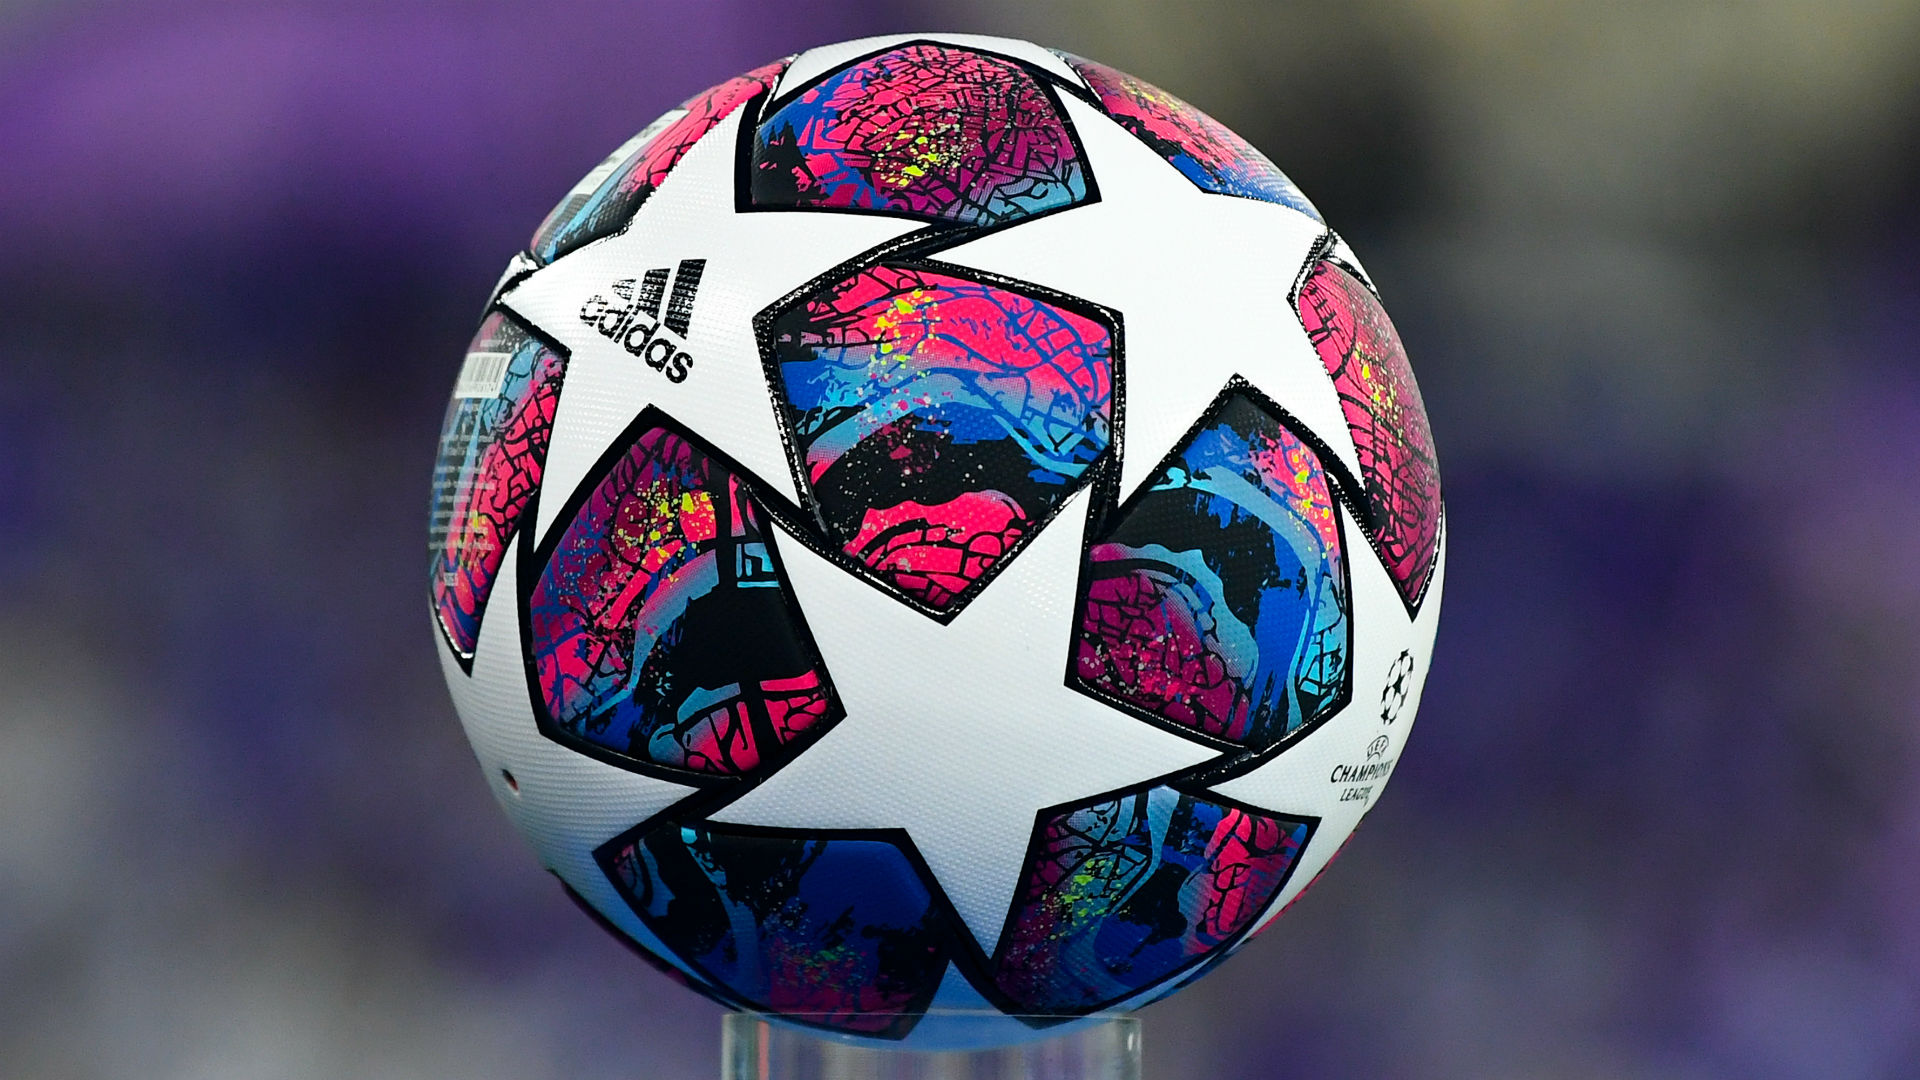 How To Watch Champions League In The Usa Full Tv Schedule For 2020 On Cbs Channels Sporting News